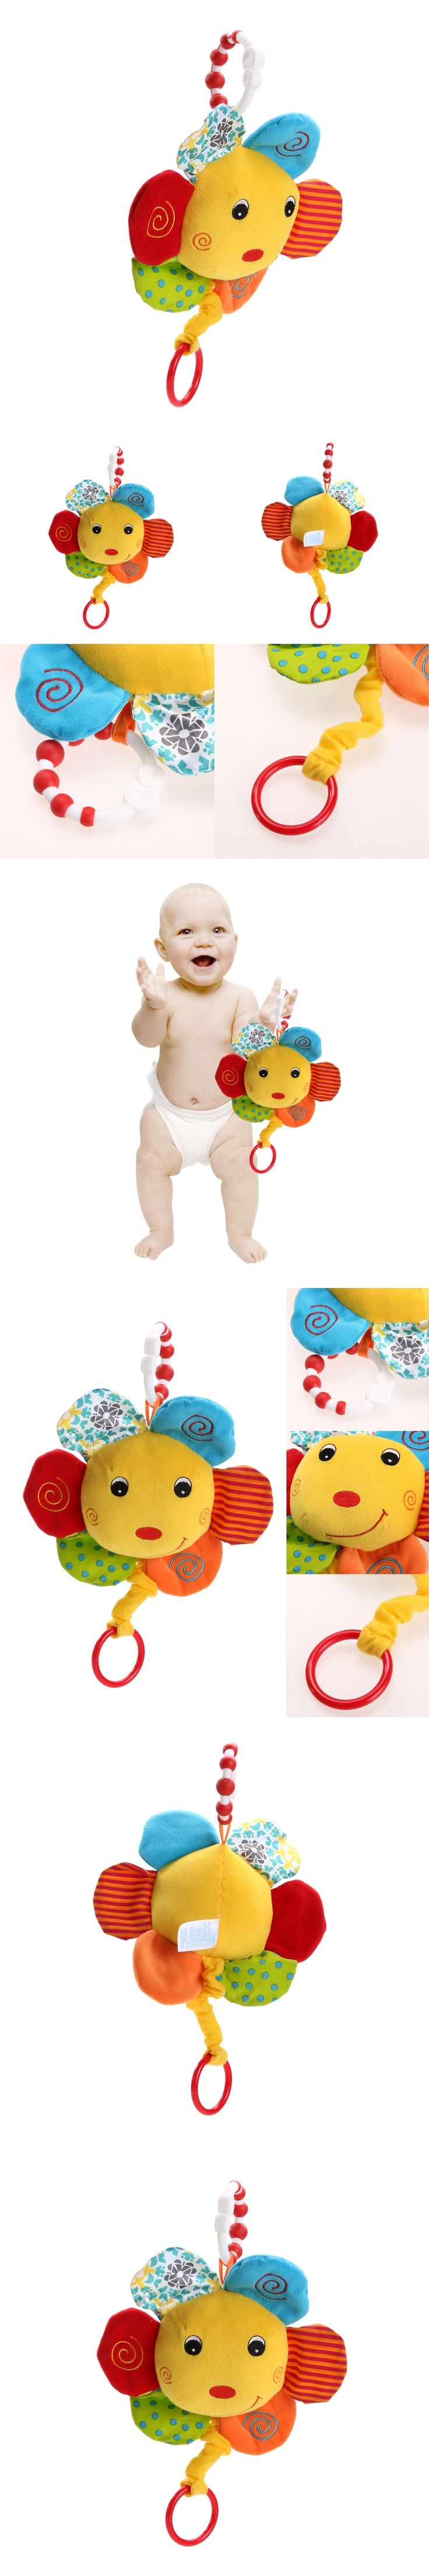 Baby  Pull Ring Bed Hanging Plush Doll Kids Hand Grasp cotton Music Toy (Sunflower) Baby Stroller Accessories Toys